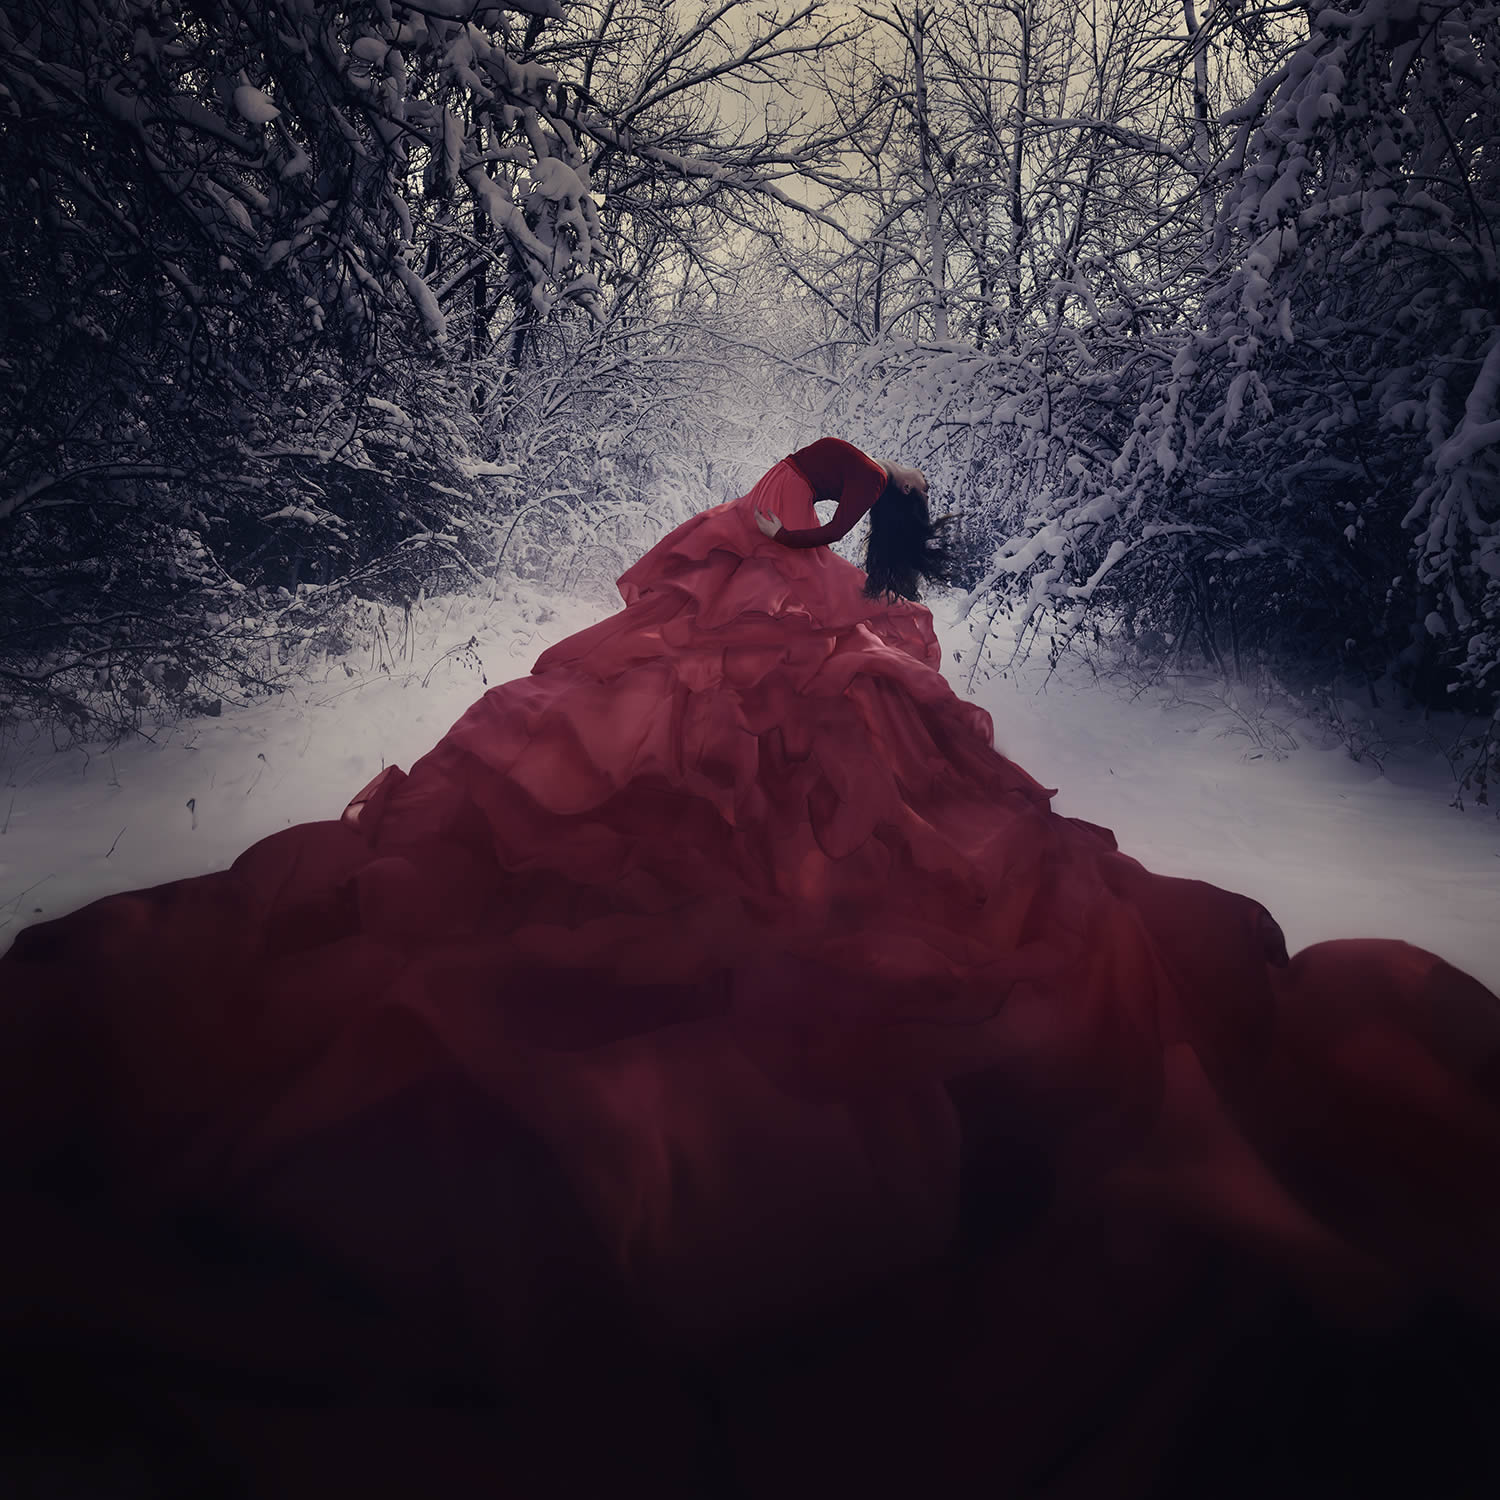 big red dress, surreal photo by jenna martin